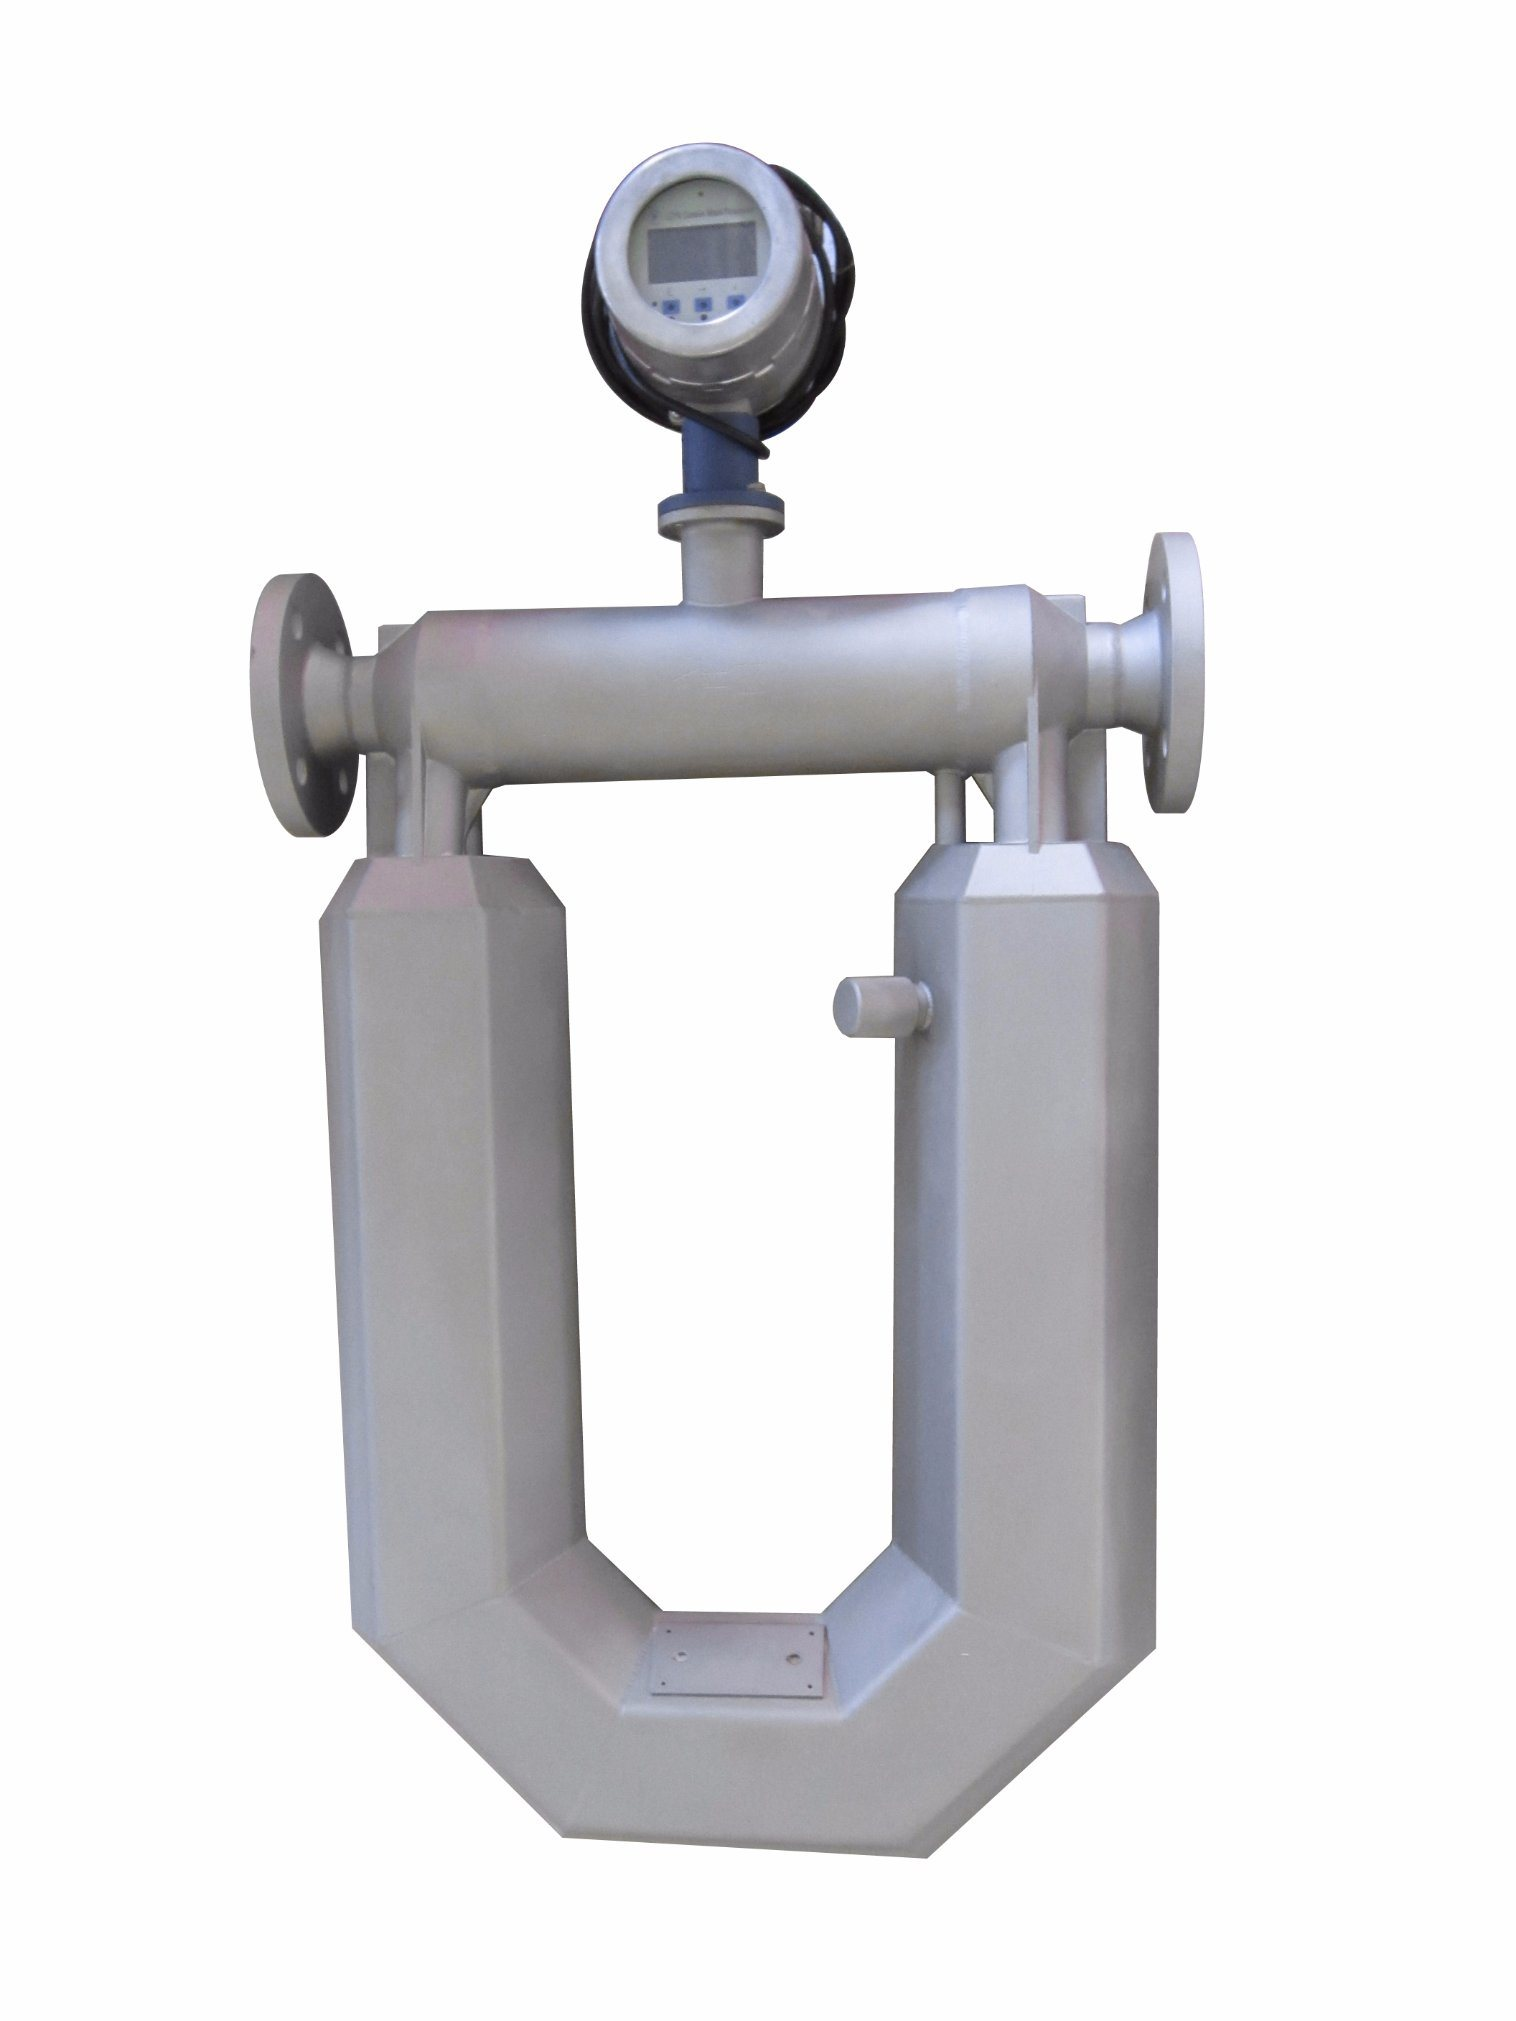 Ex Approved Coriolis Mass Flowmeter for Oil & Gas